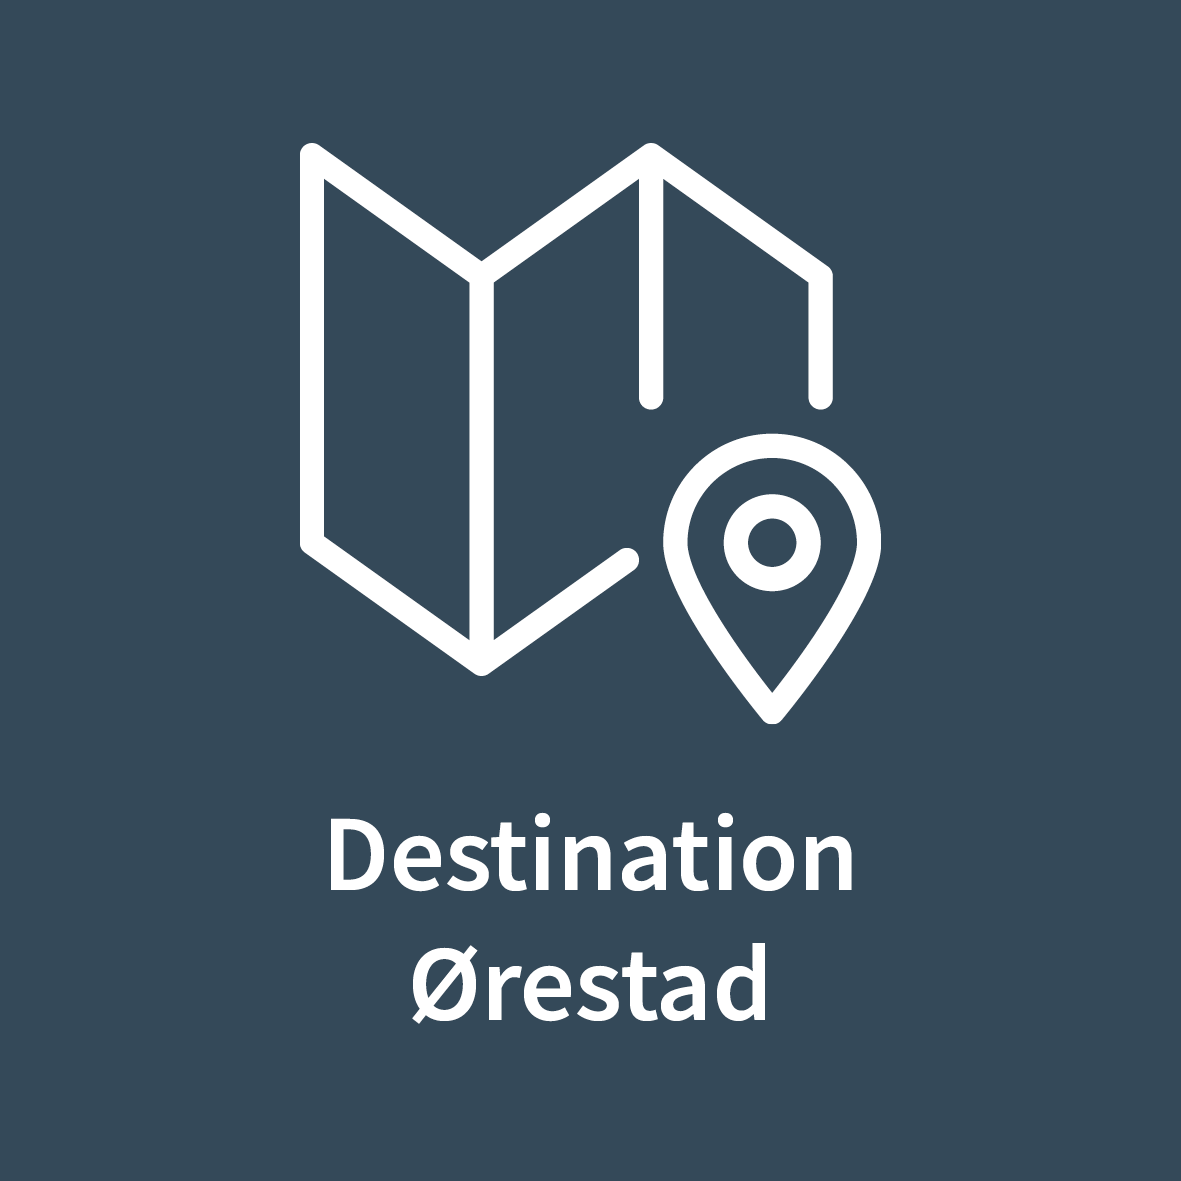 Destination Ørestad.png